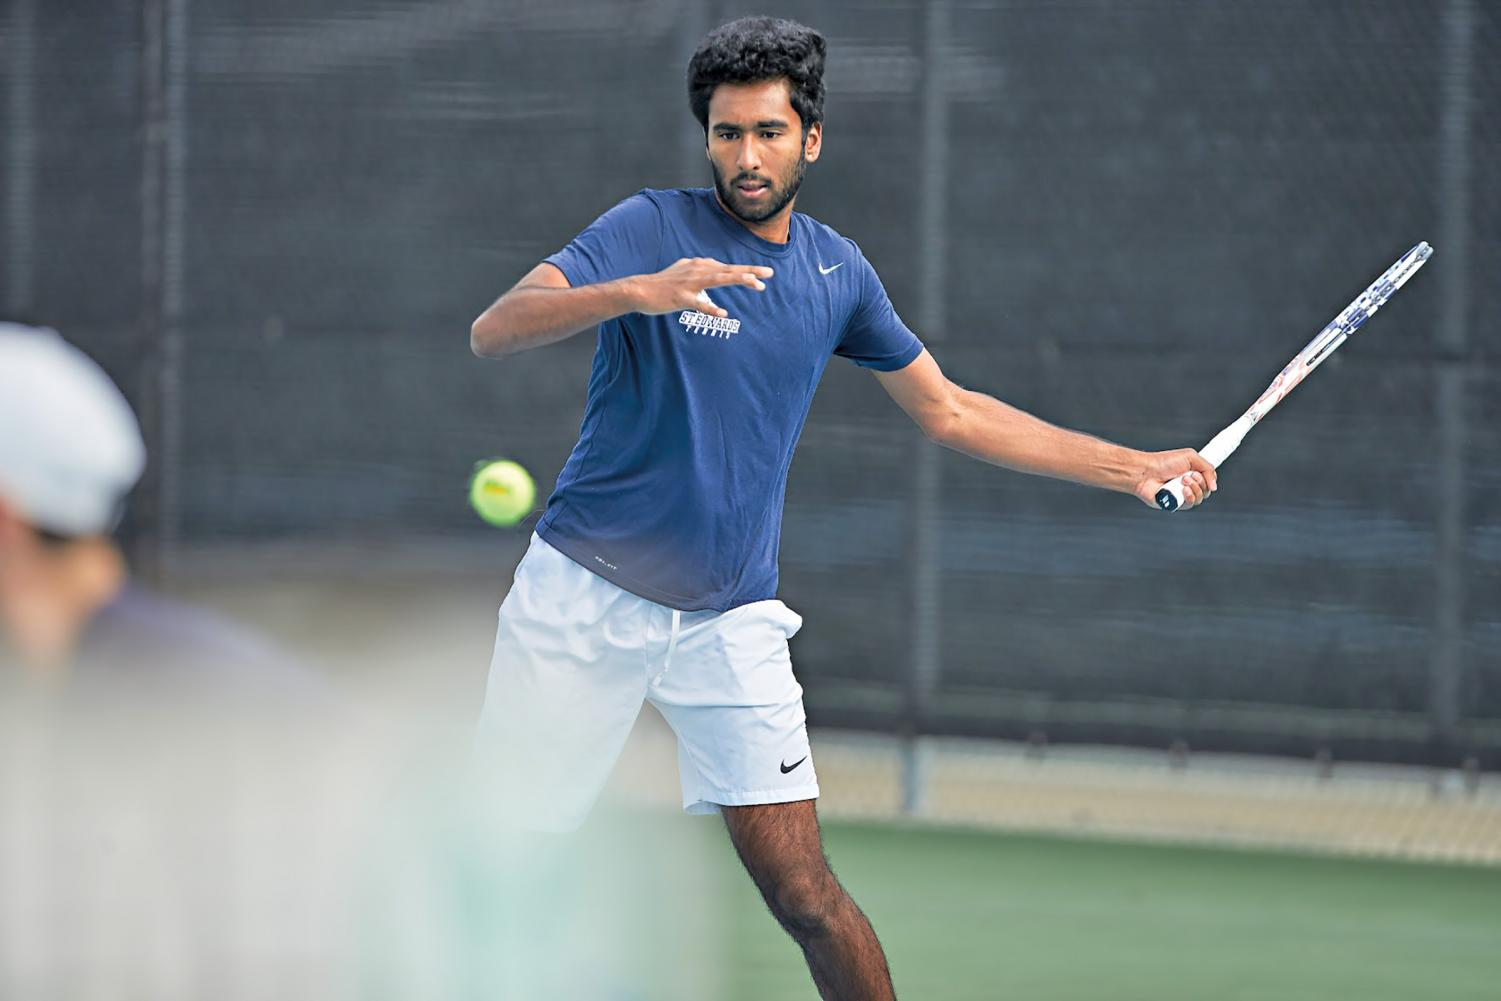 In his first year at the university, Anish Sriniketh has been a major contributing factor for men's tennis' winning season.